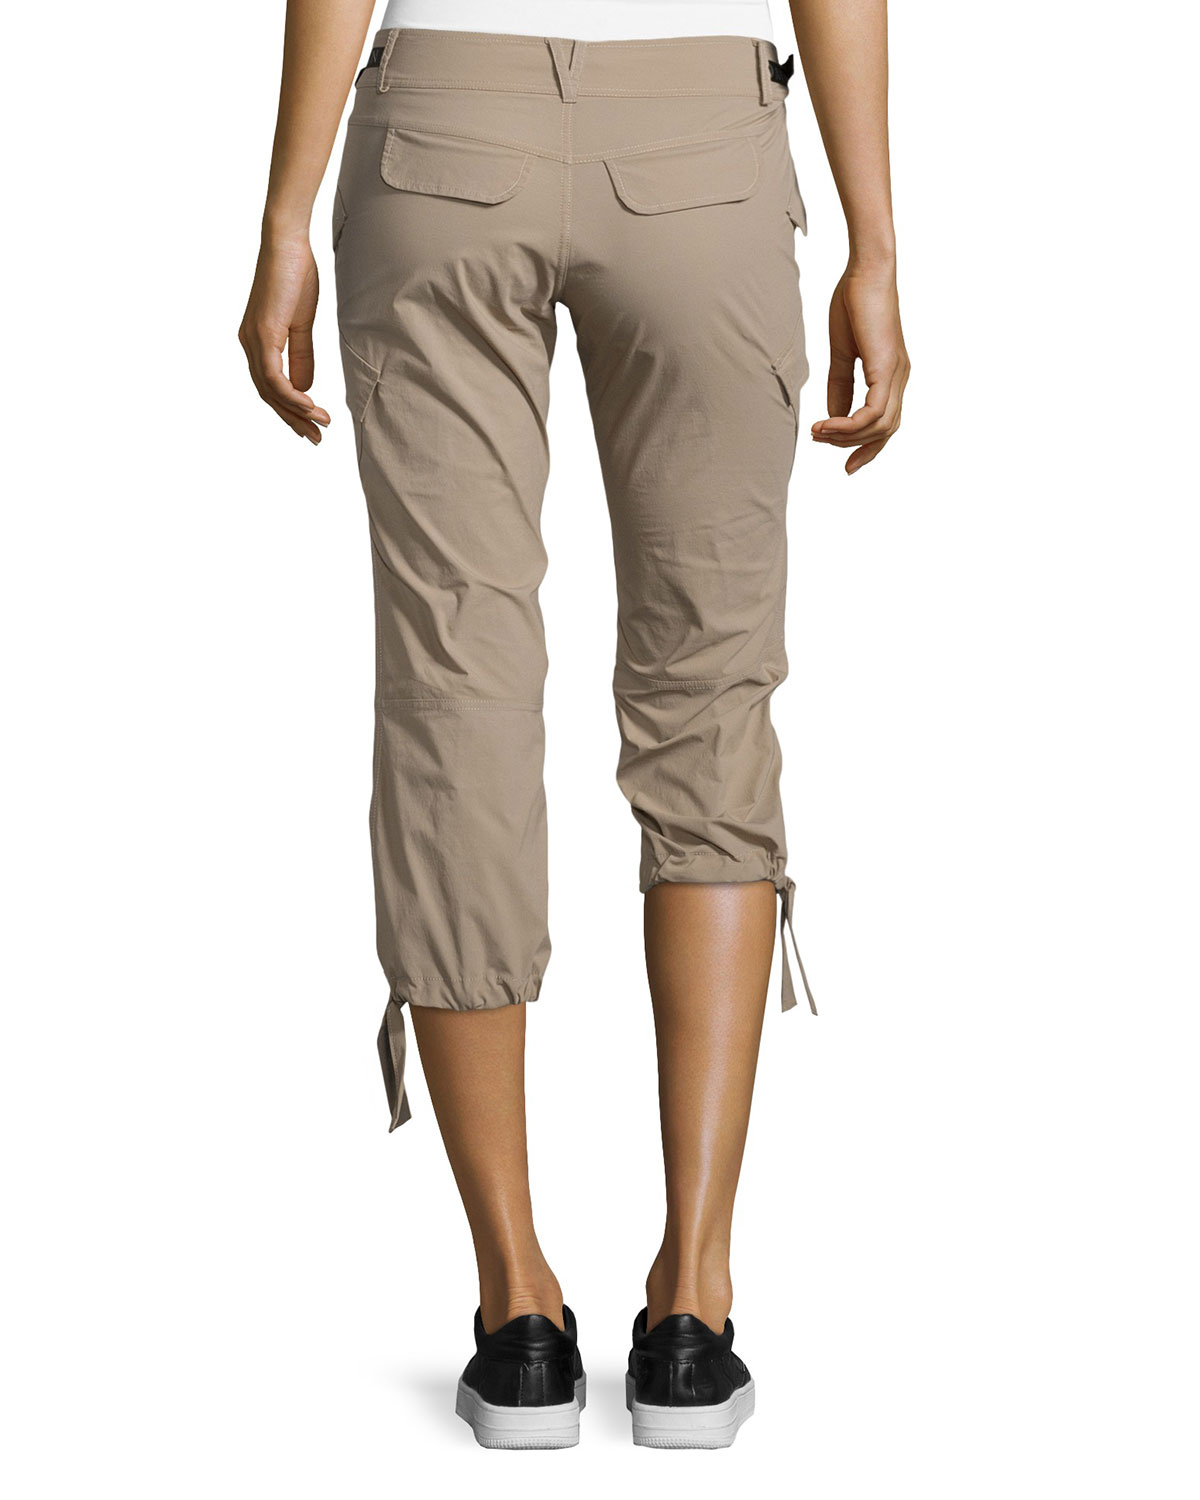 Anatomie Low-Rise Cargo Capri Pants in Natural | Lyst